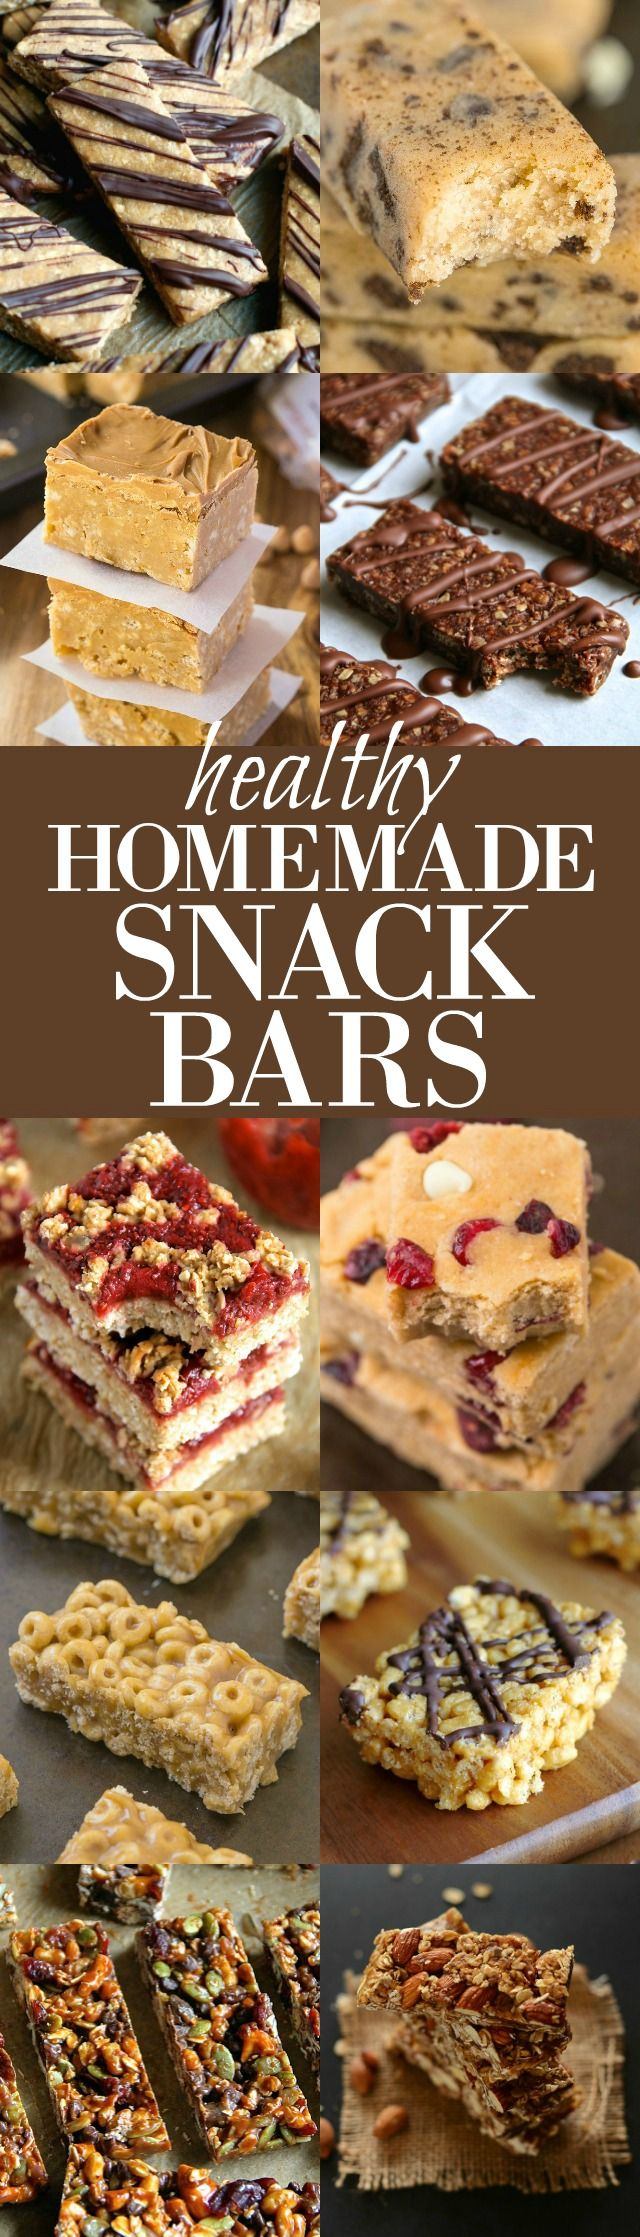 Don't pay an arm and a leg for mediocre store-bought bars! Make AMAZING ones at home with this collection of healthy recipes! | runningwithspoons...